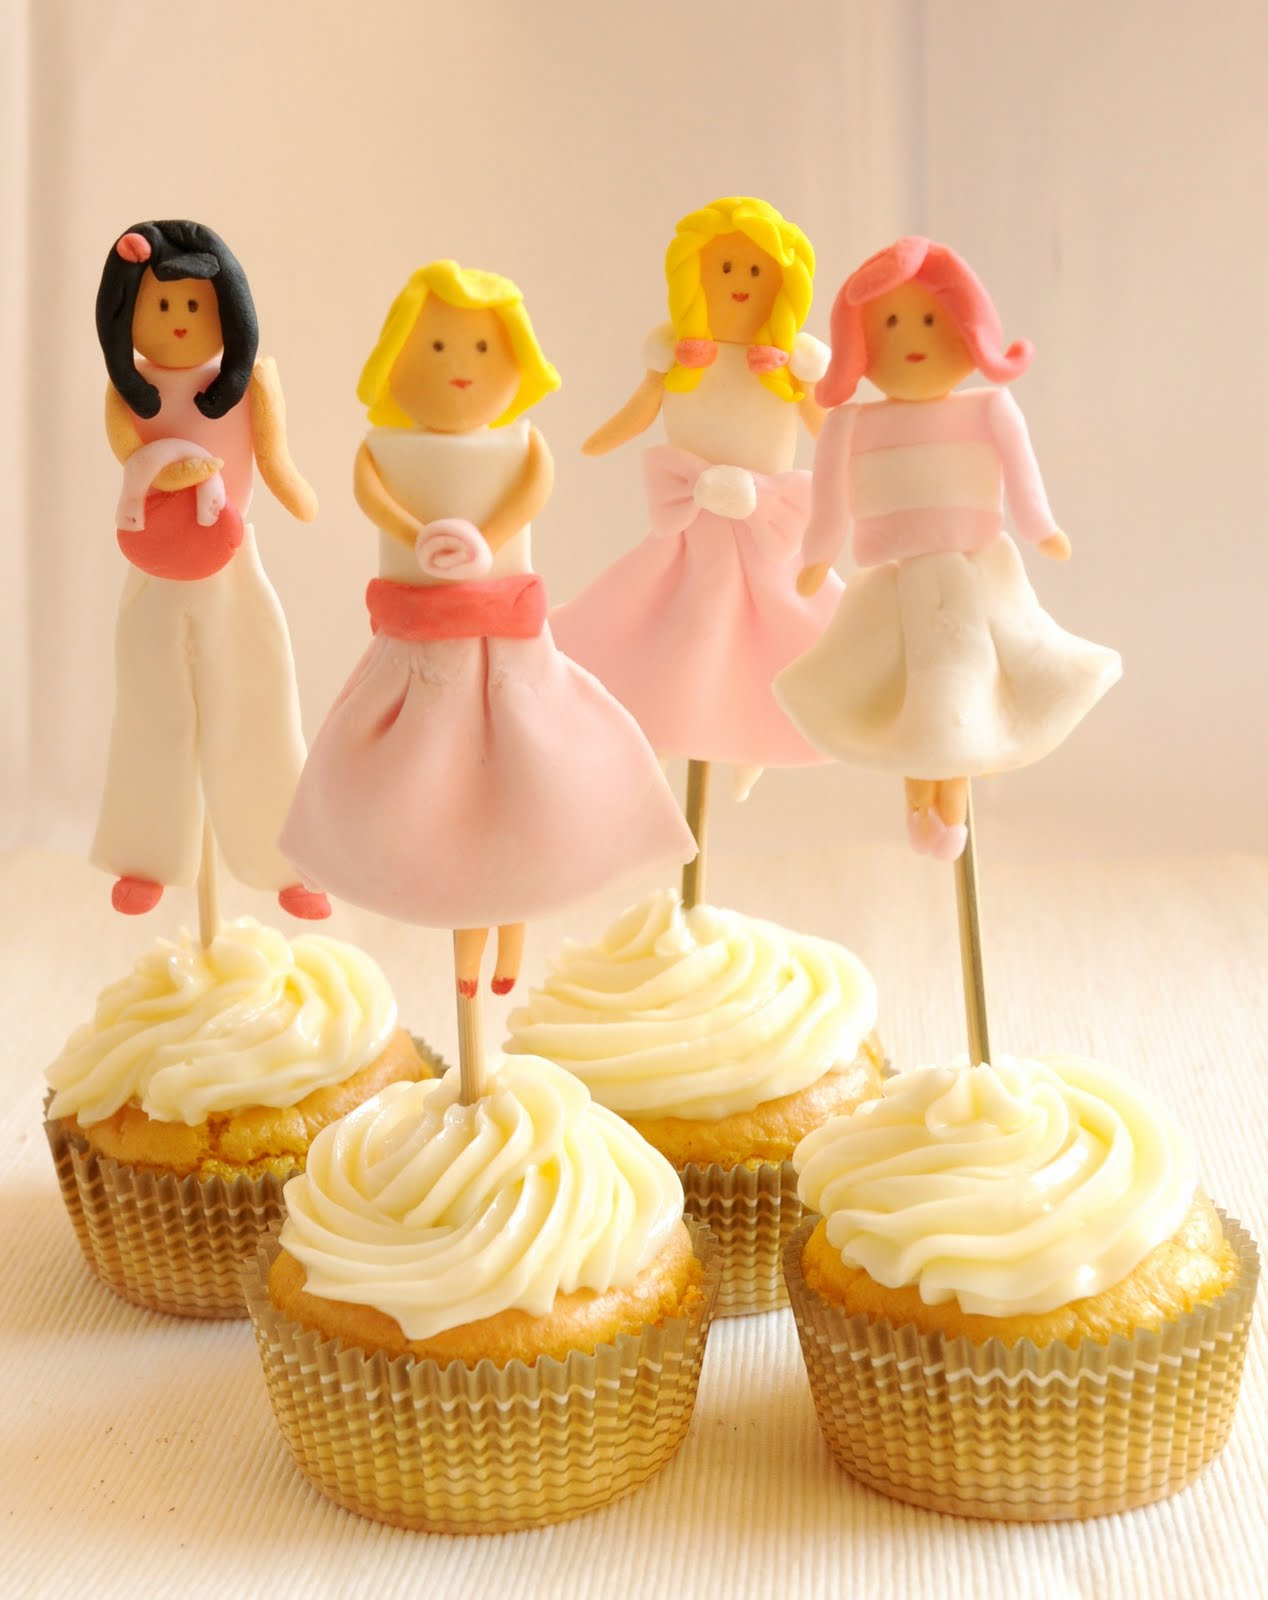 DIY Fondant Dolls Cupcake Toppers - via BirdsParty.com